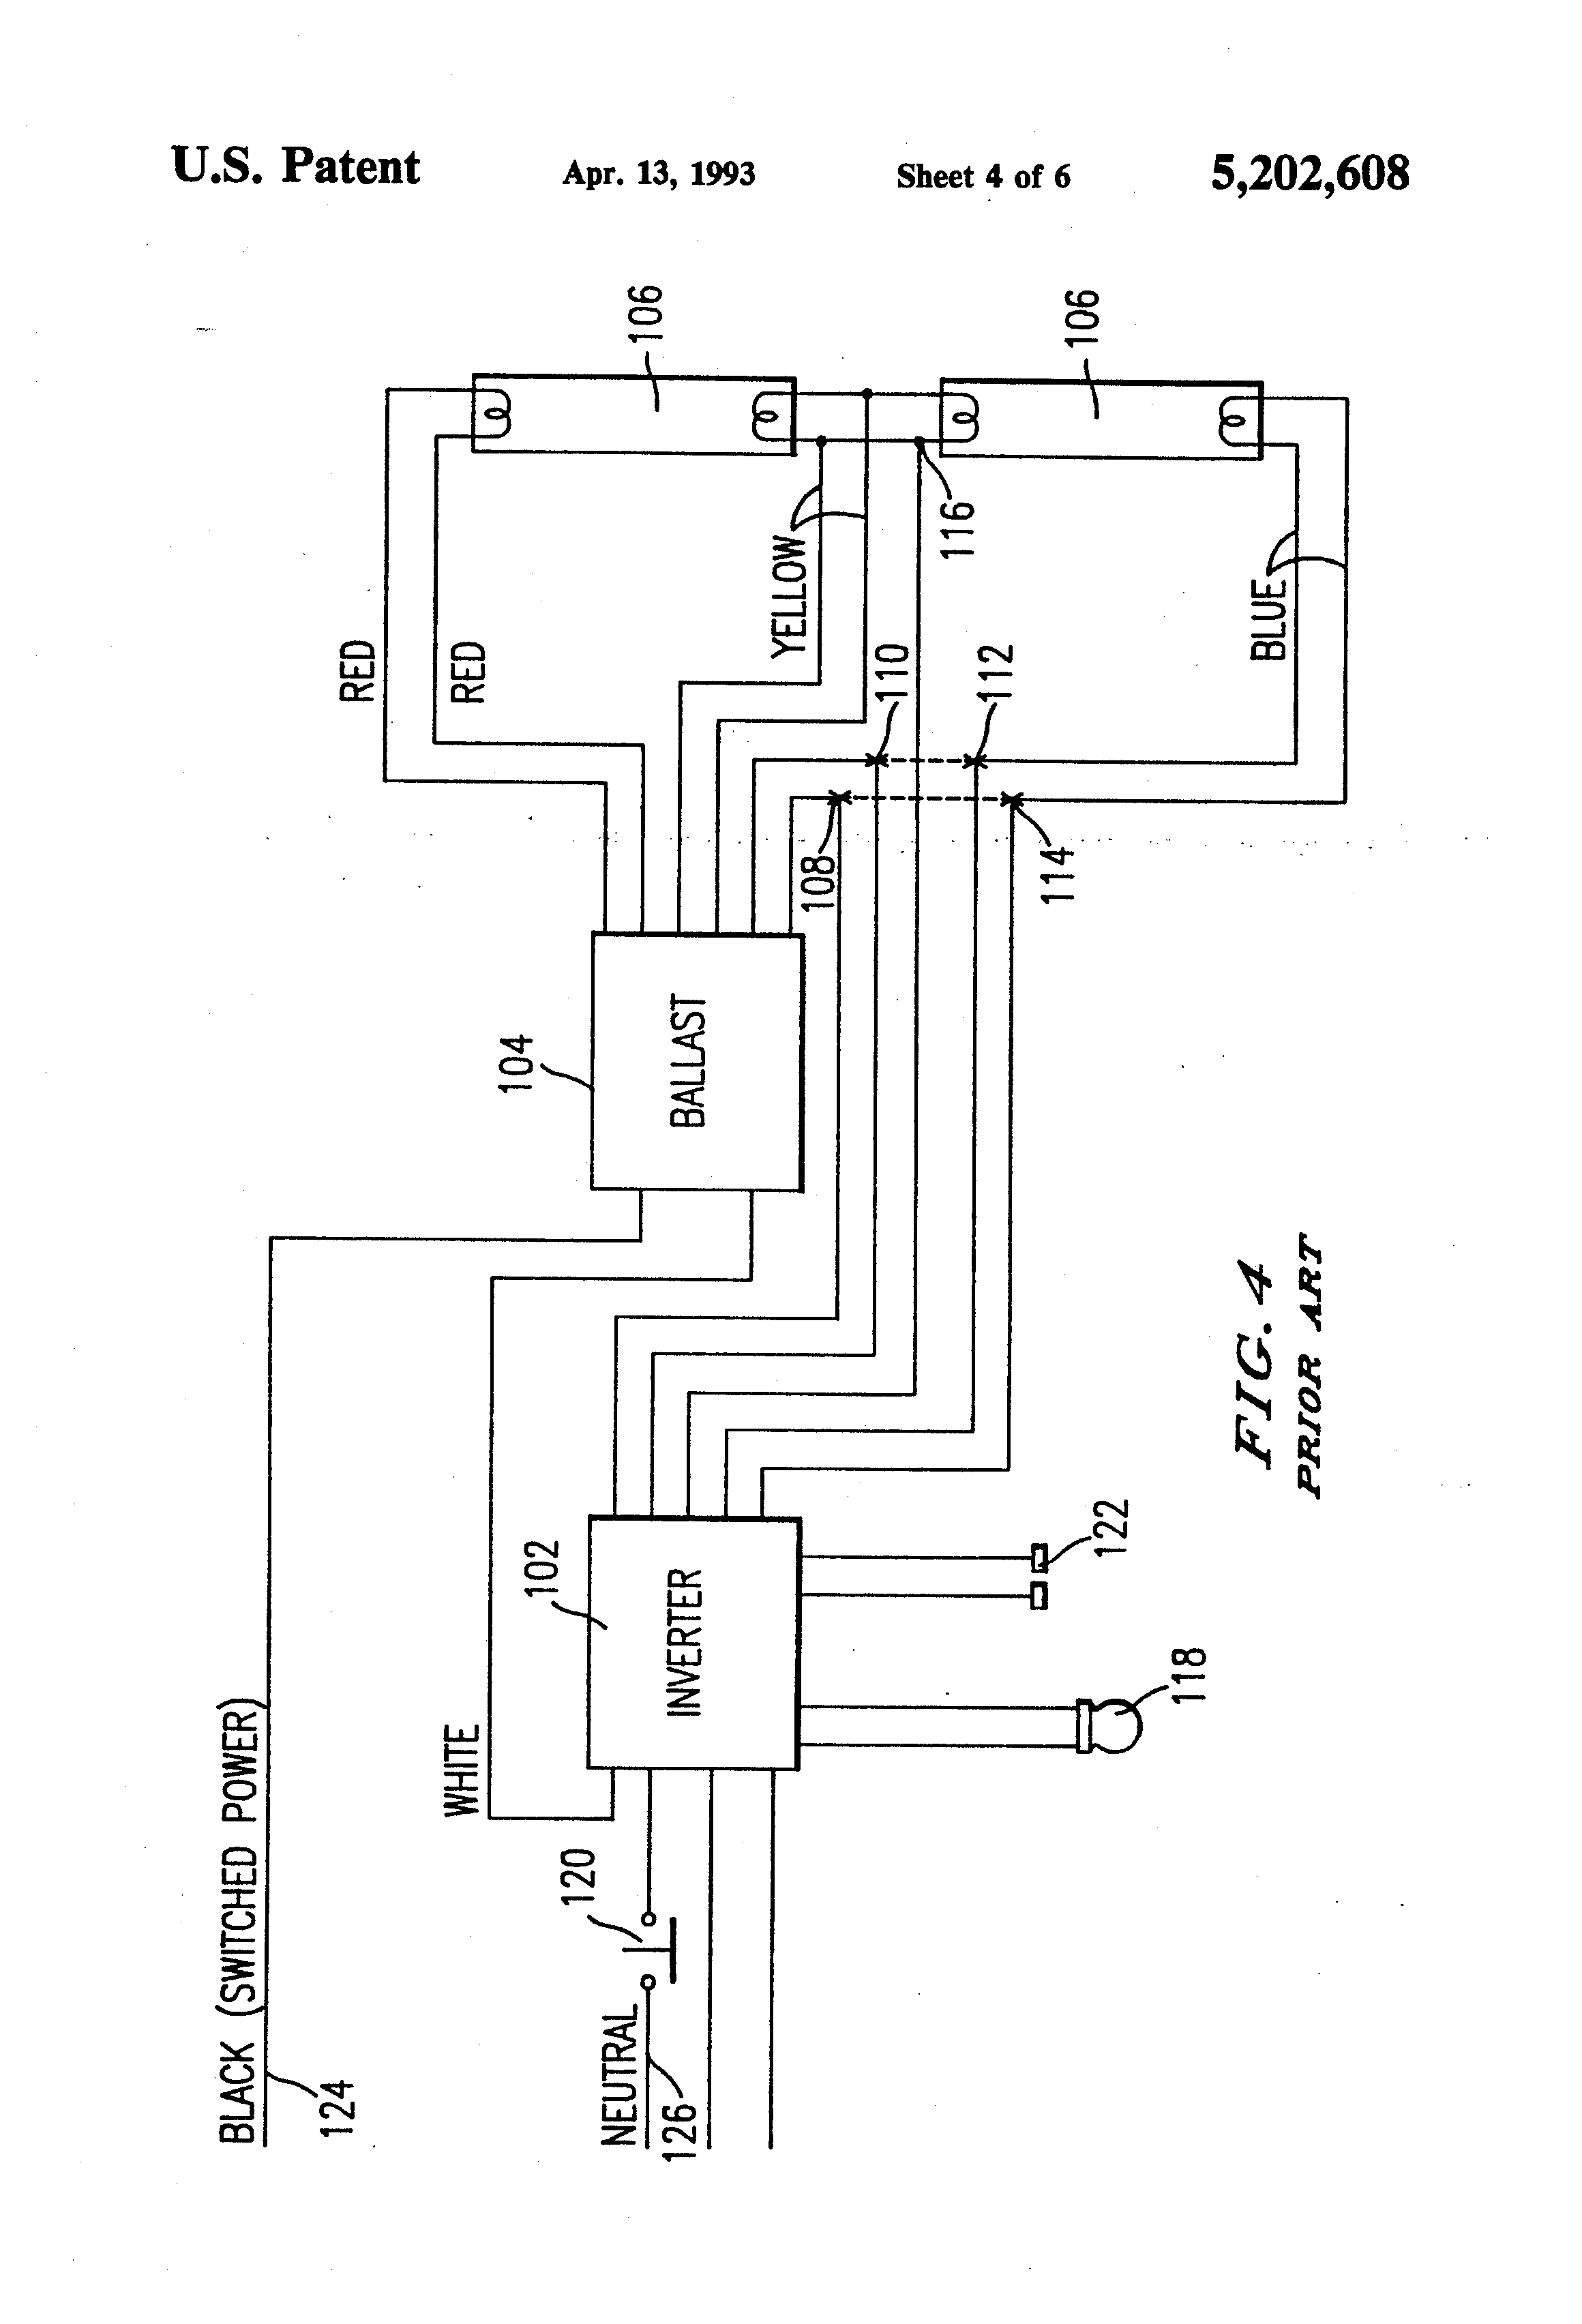 clark up a drum switch wiring diagram patent us5202608 emergency lighting system utilizing a trip switch wiring diagram